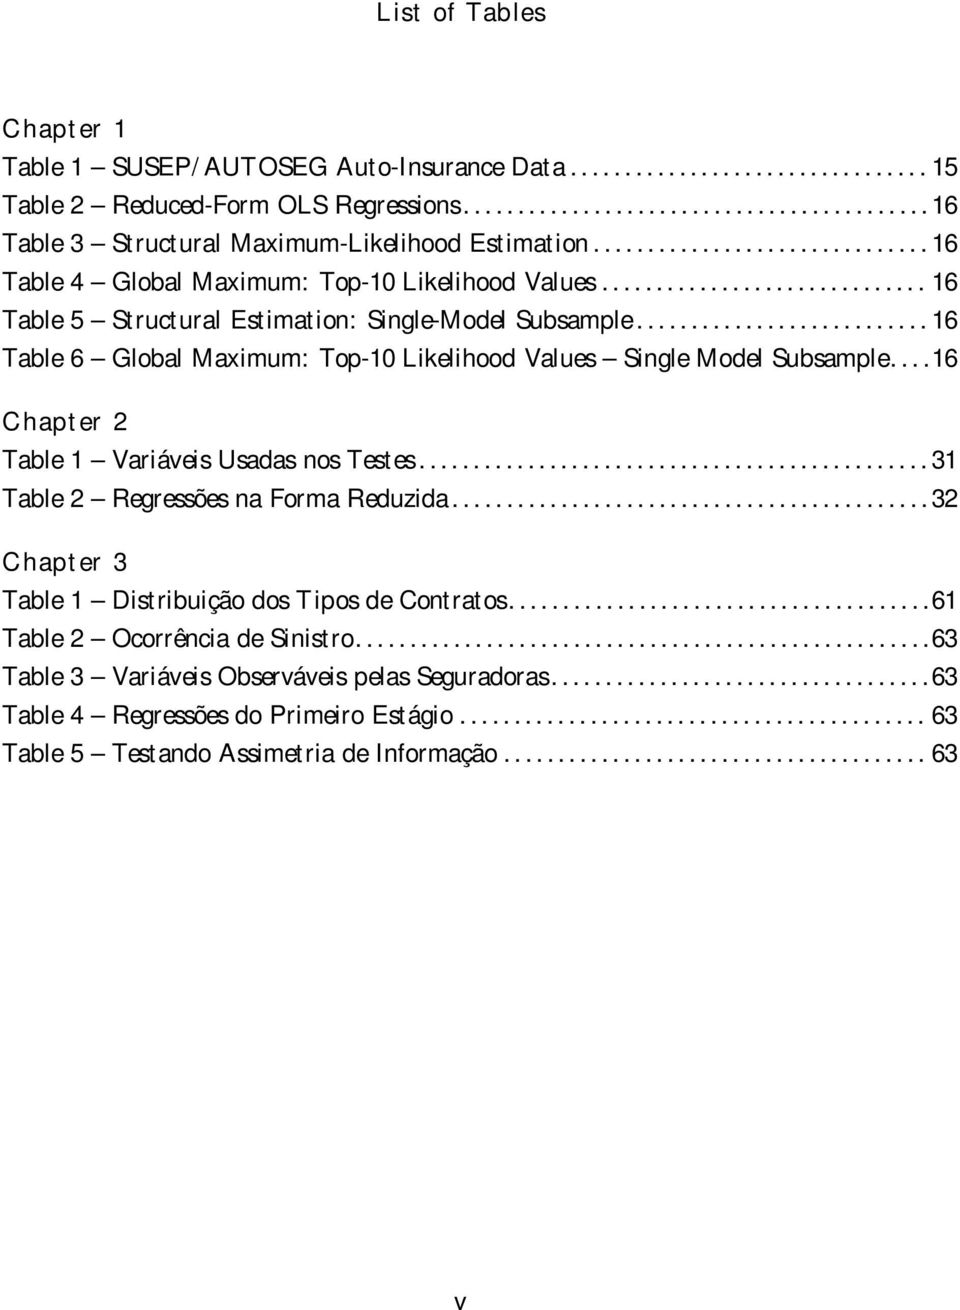 .......................... 16 Table 6 Global Maximum: Top-10 Likelihood Values Single Model Subsample....16 Chapter 2 Table 1 Variáveis Usadas nos Testes............................................... 31 Table 2 Regressões na Forma Reduzida.